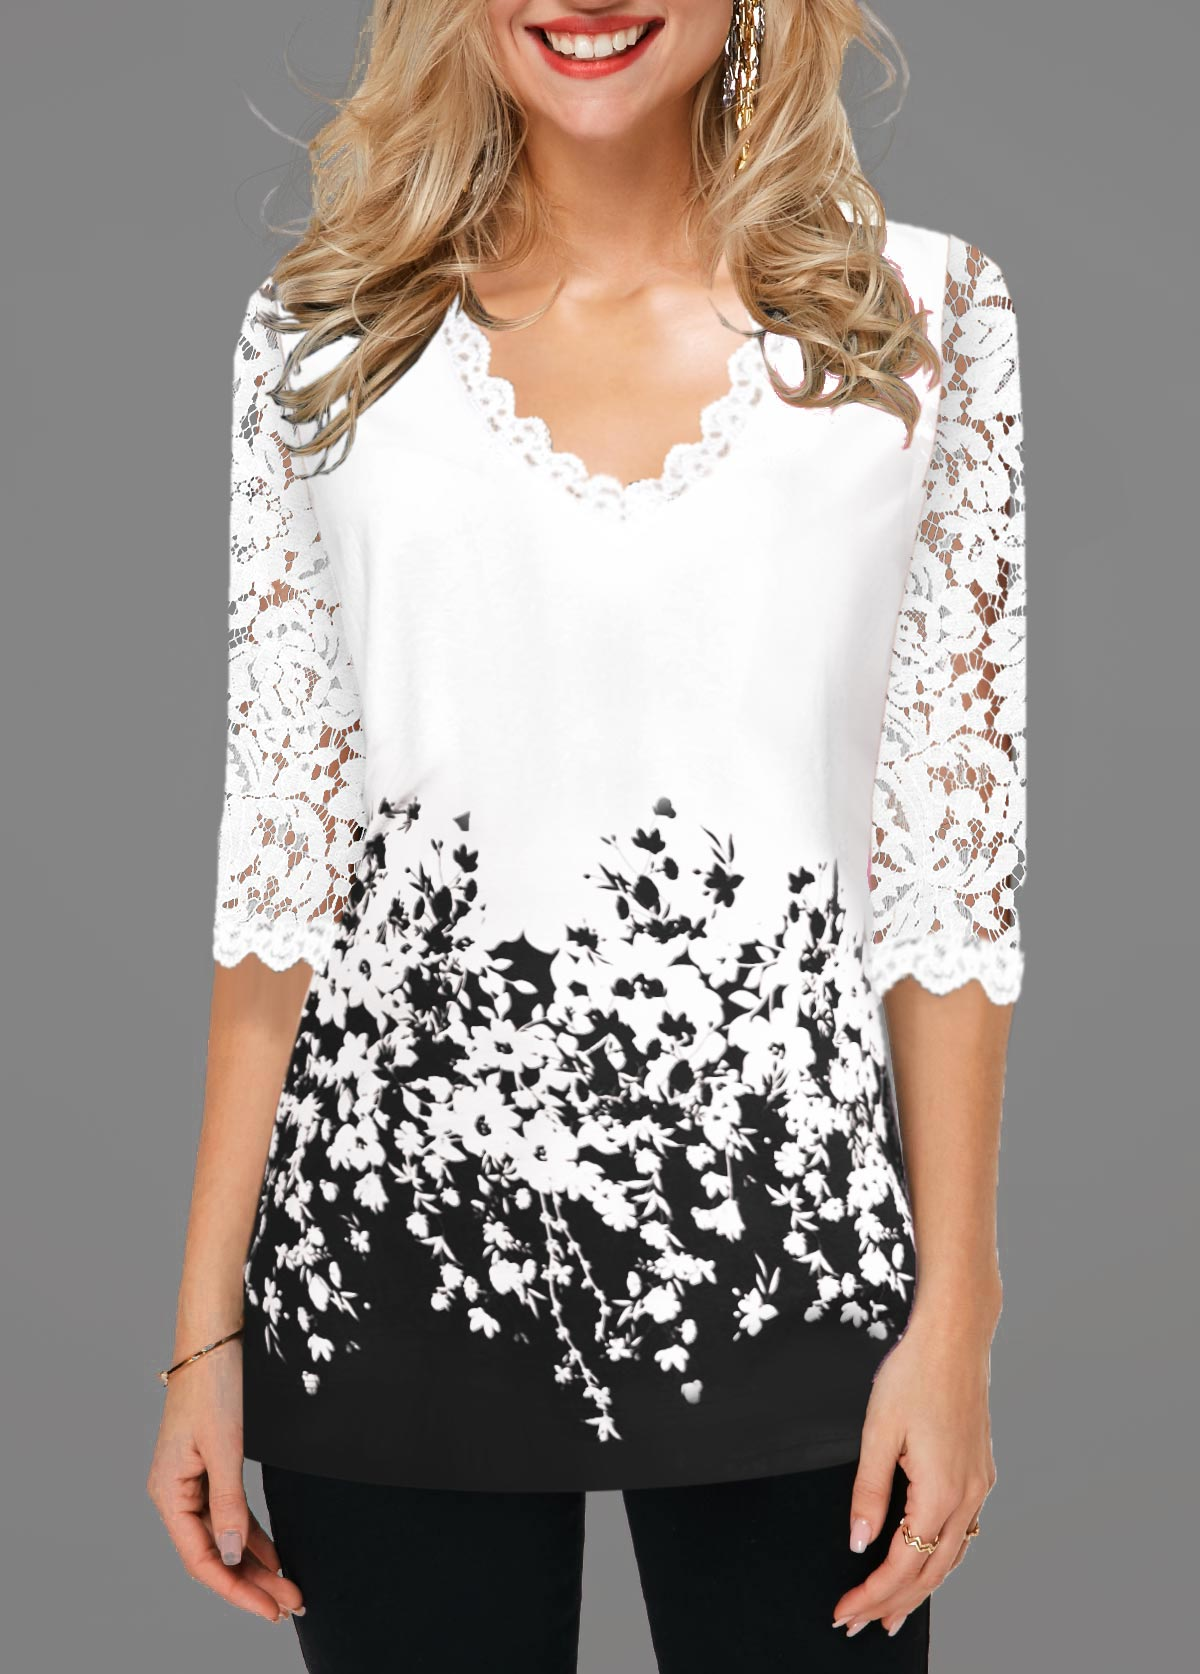 Floral Print Lace Detail Contrast Panel T Shirt